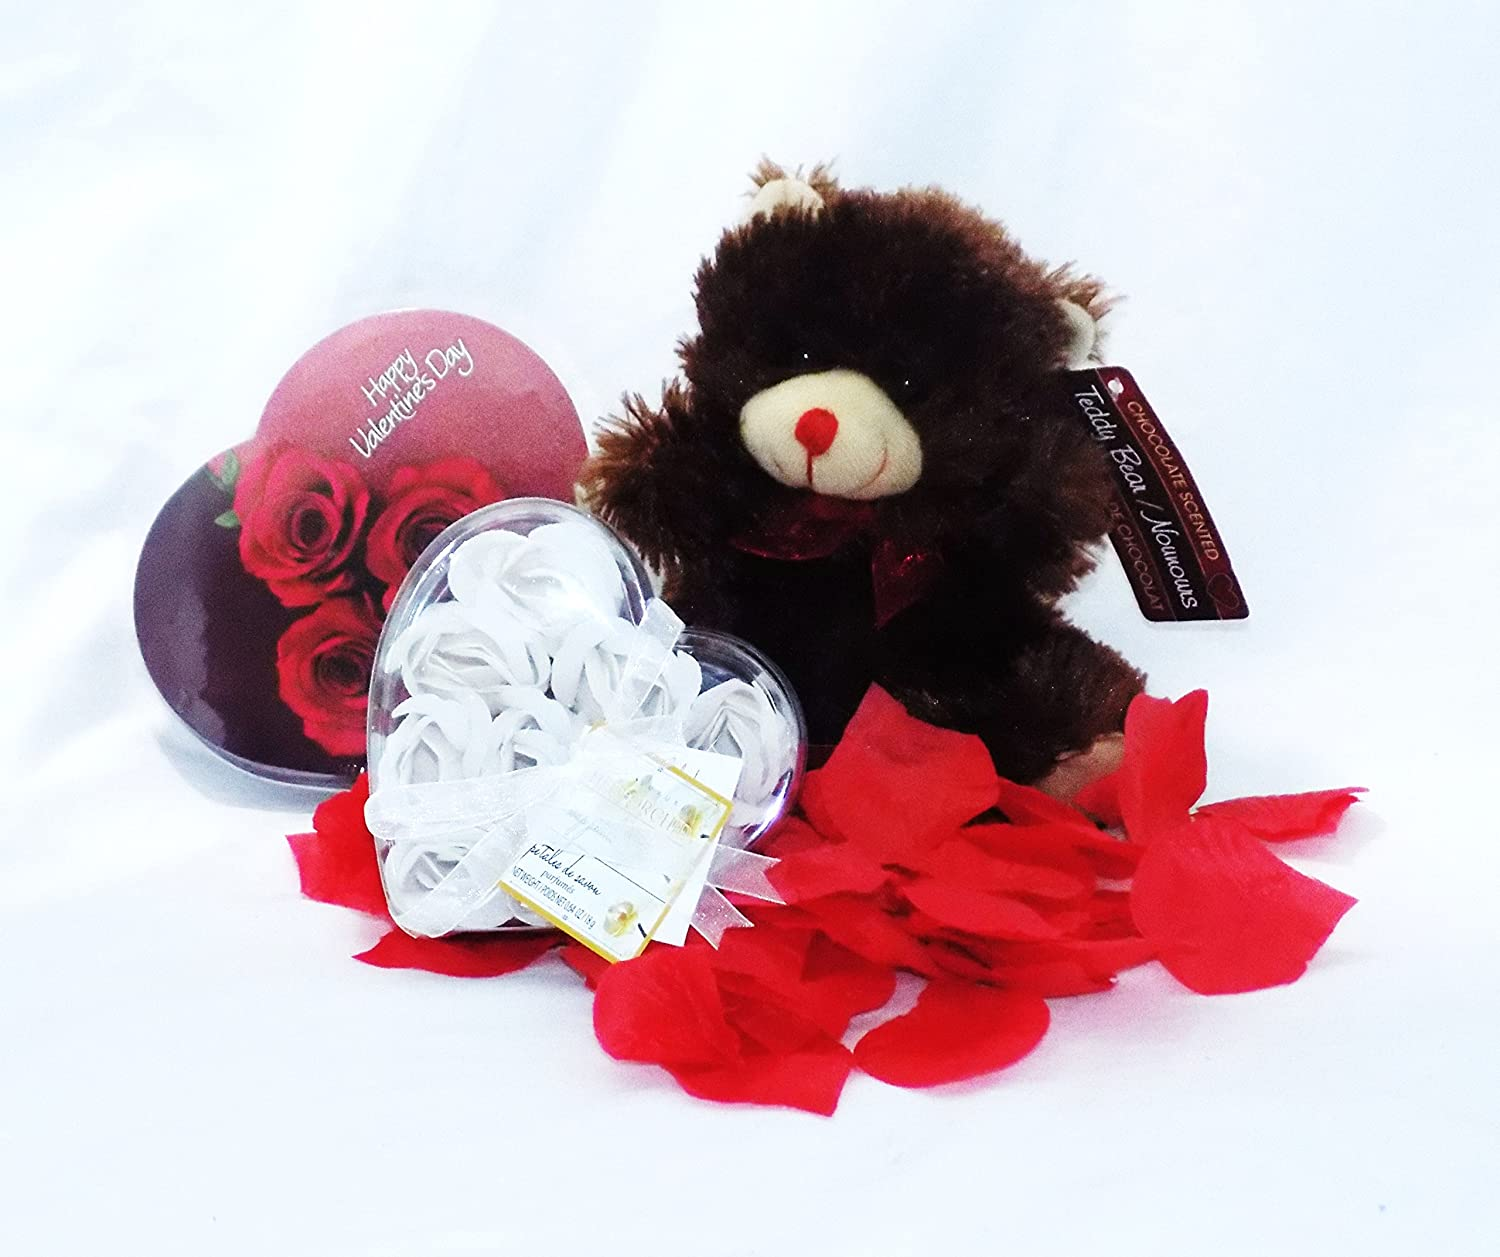 Amazon.com : Valentine's Day Chocolate Roses and Teddy Bear Gift ...